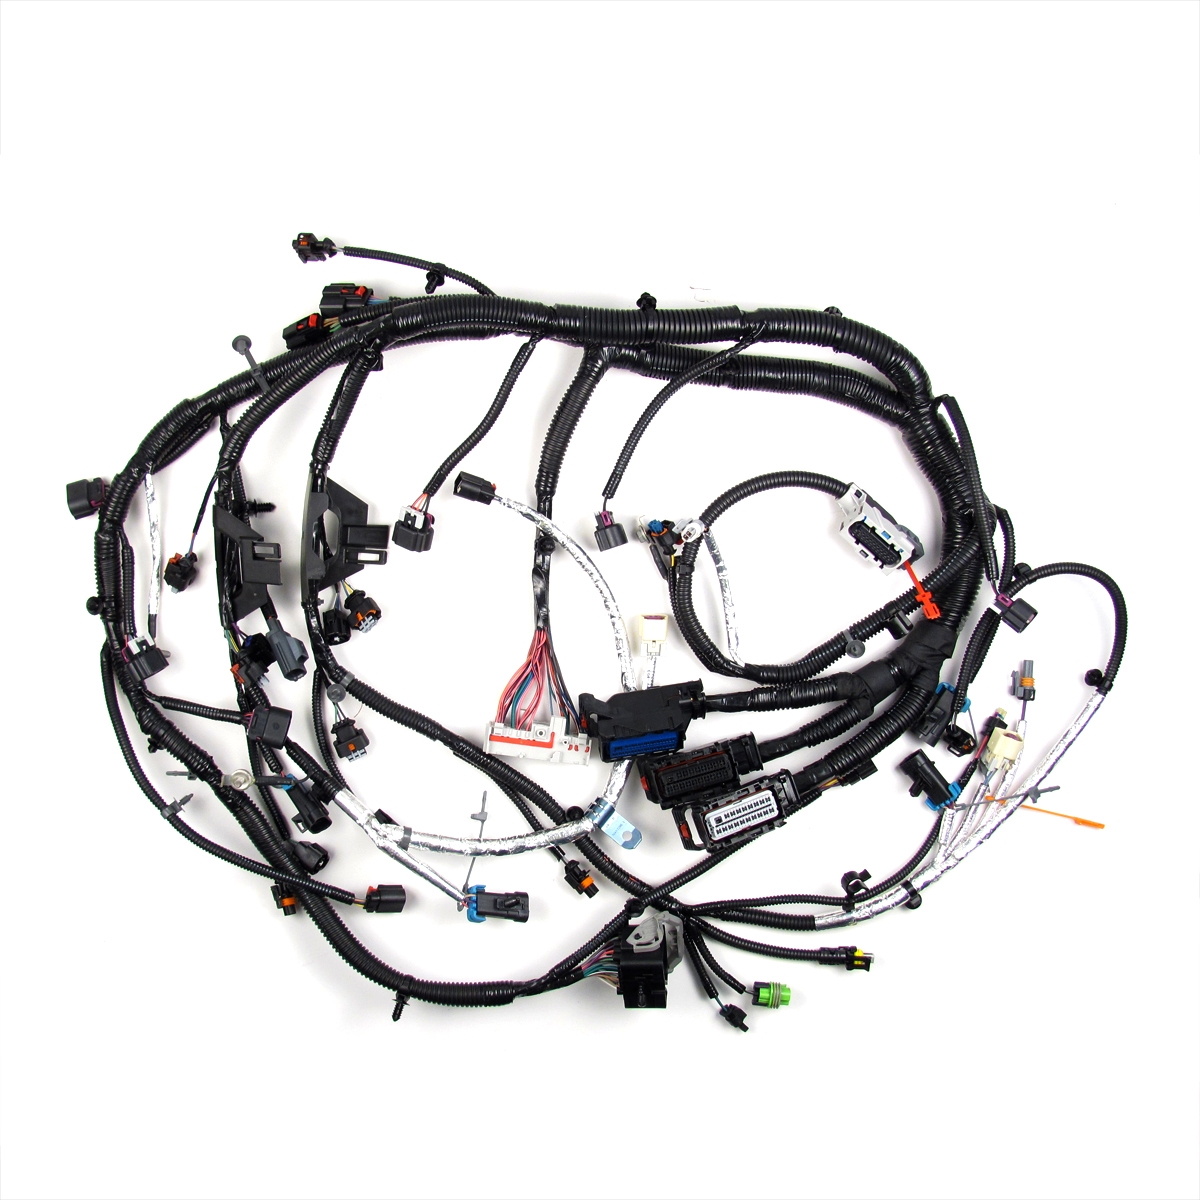 Engine Harness for 3.6L V6 with Flex Fuel Factory Part No. 22981451 - SMC  Performance and   Chevrolet Wiring Harness Parts      SMC Performance